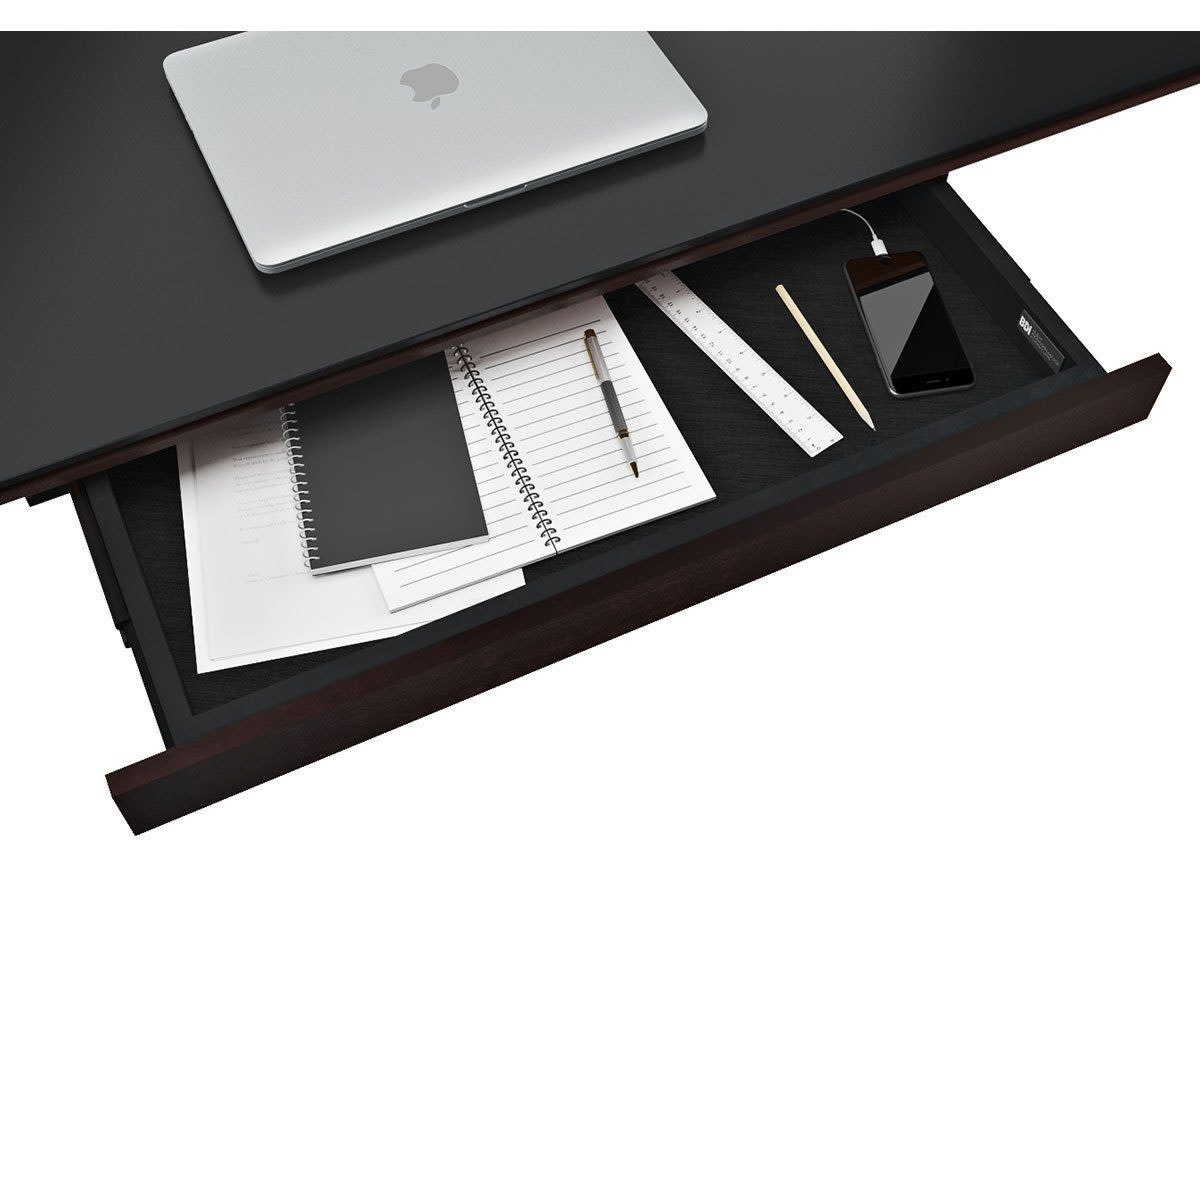 BDI Sequel 6059 Storage Drawer ( For model 6052 only )